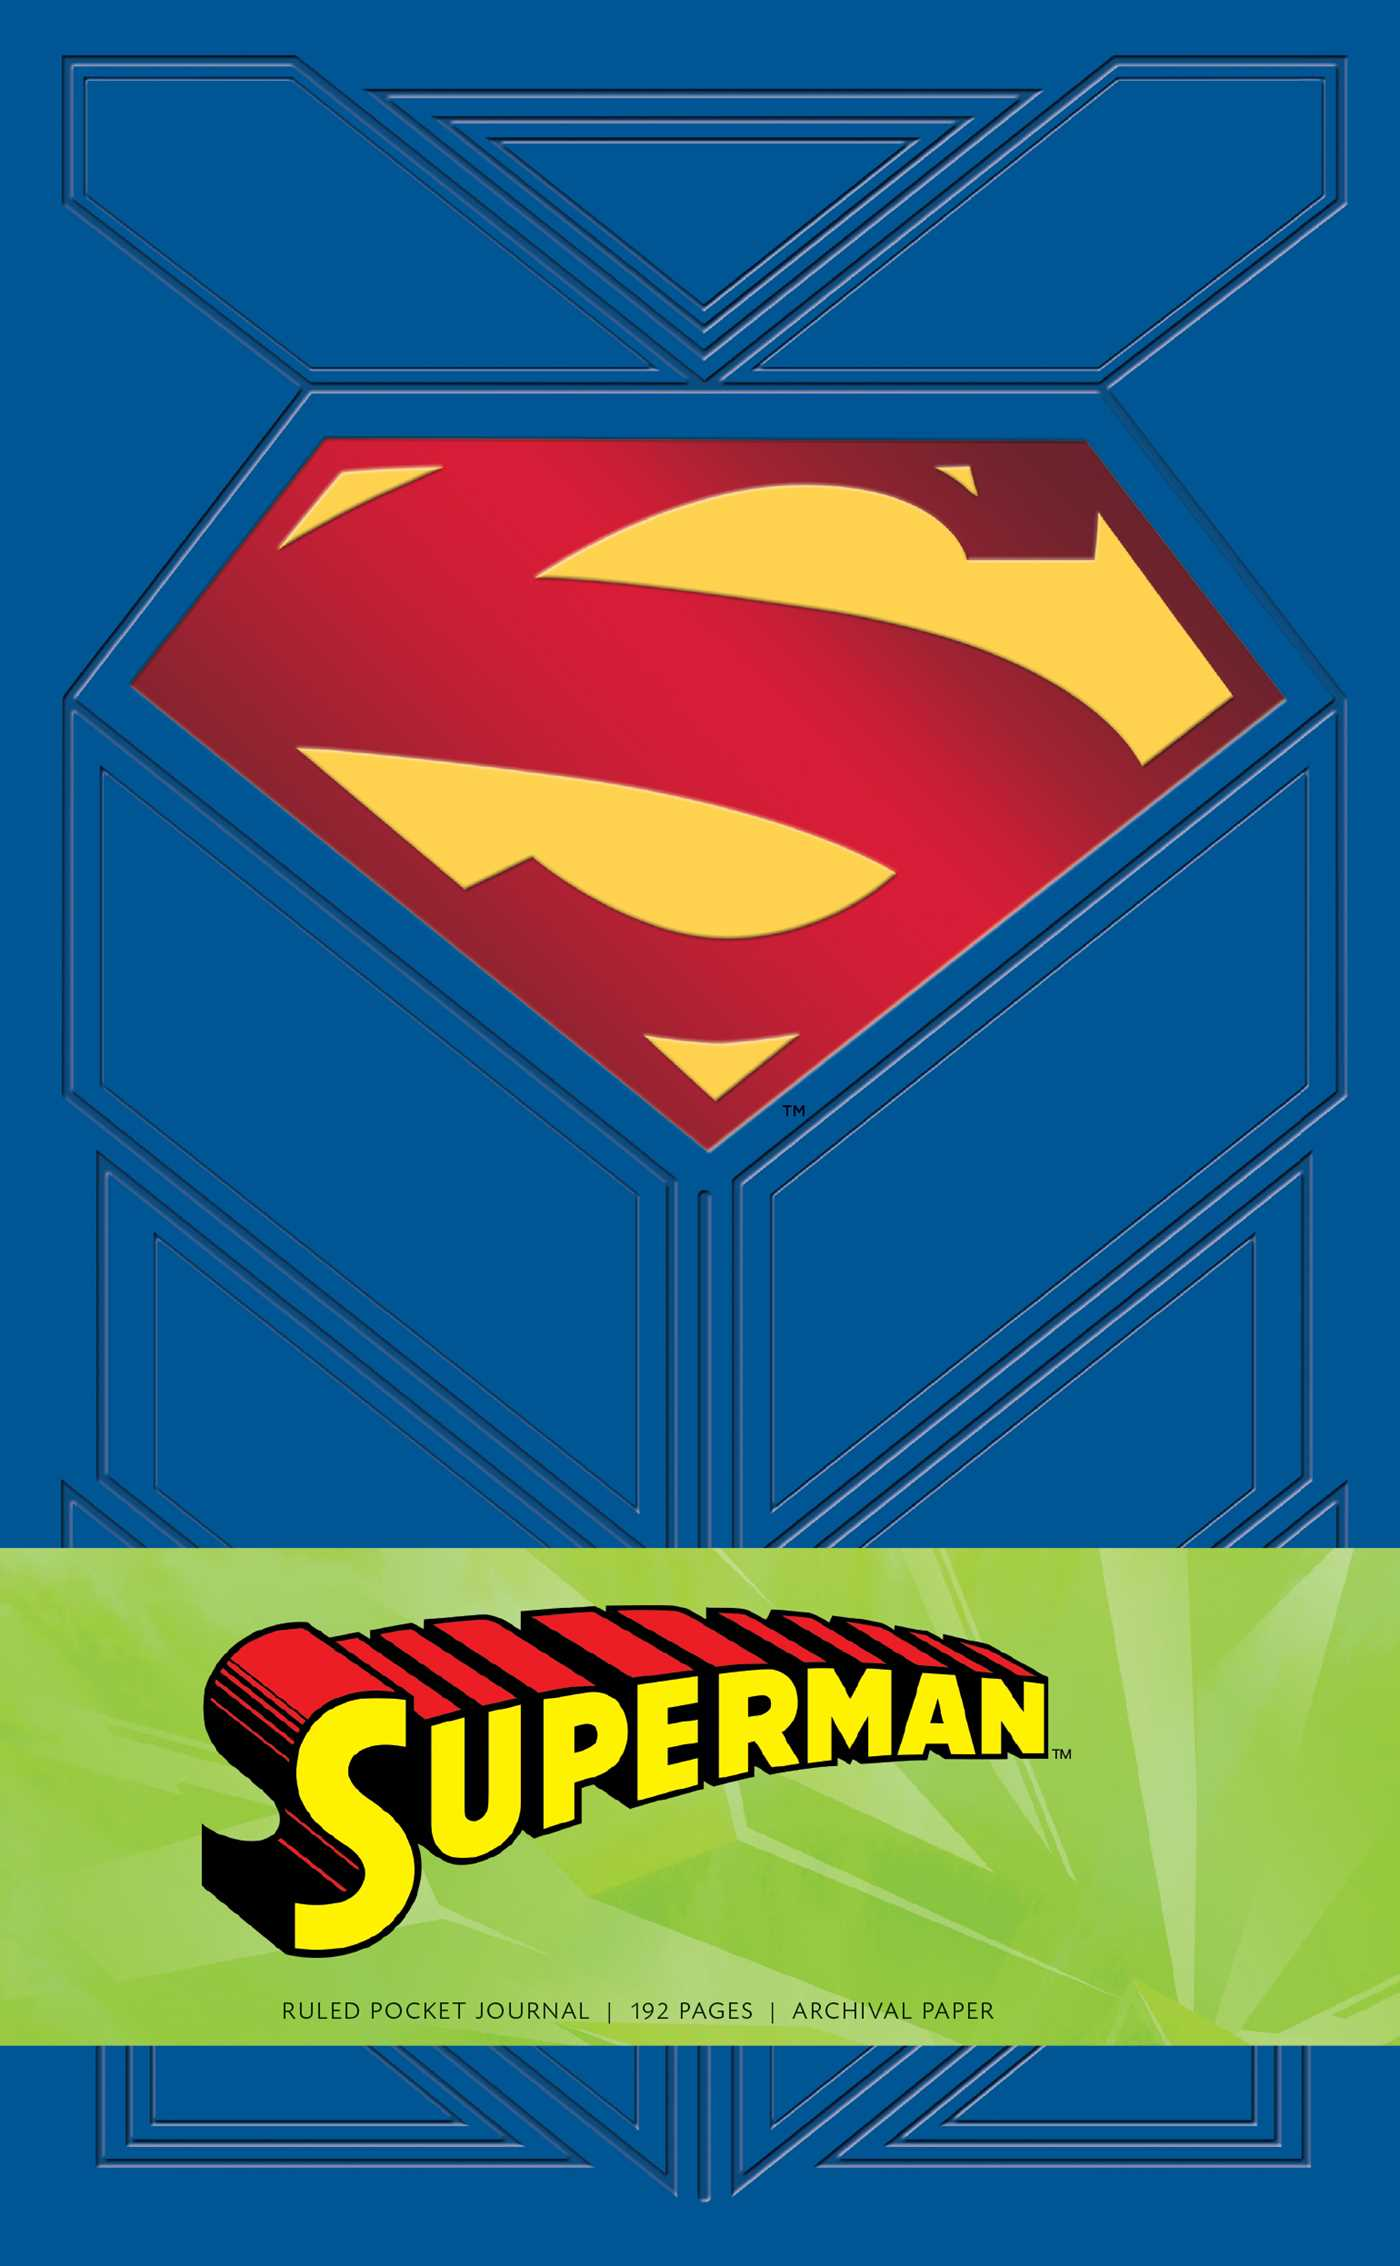 Superman ruled pocket journal 9781683830412 hr